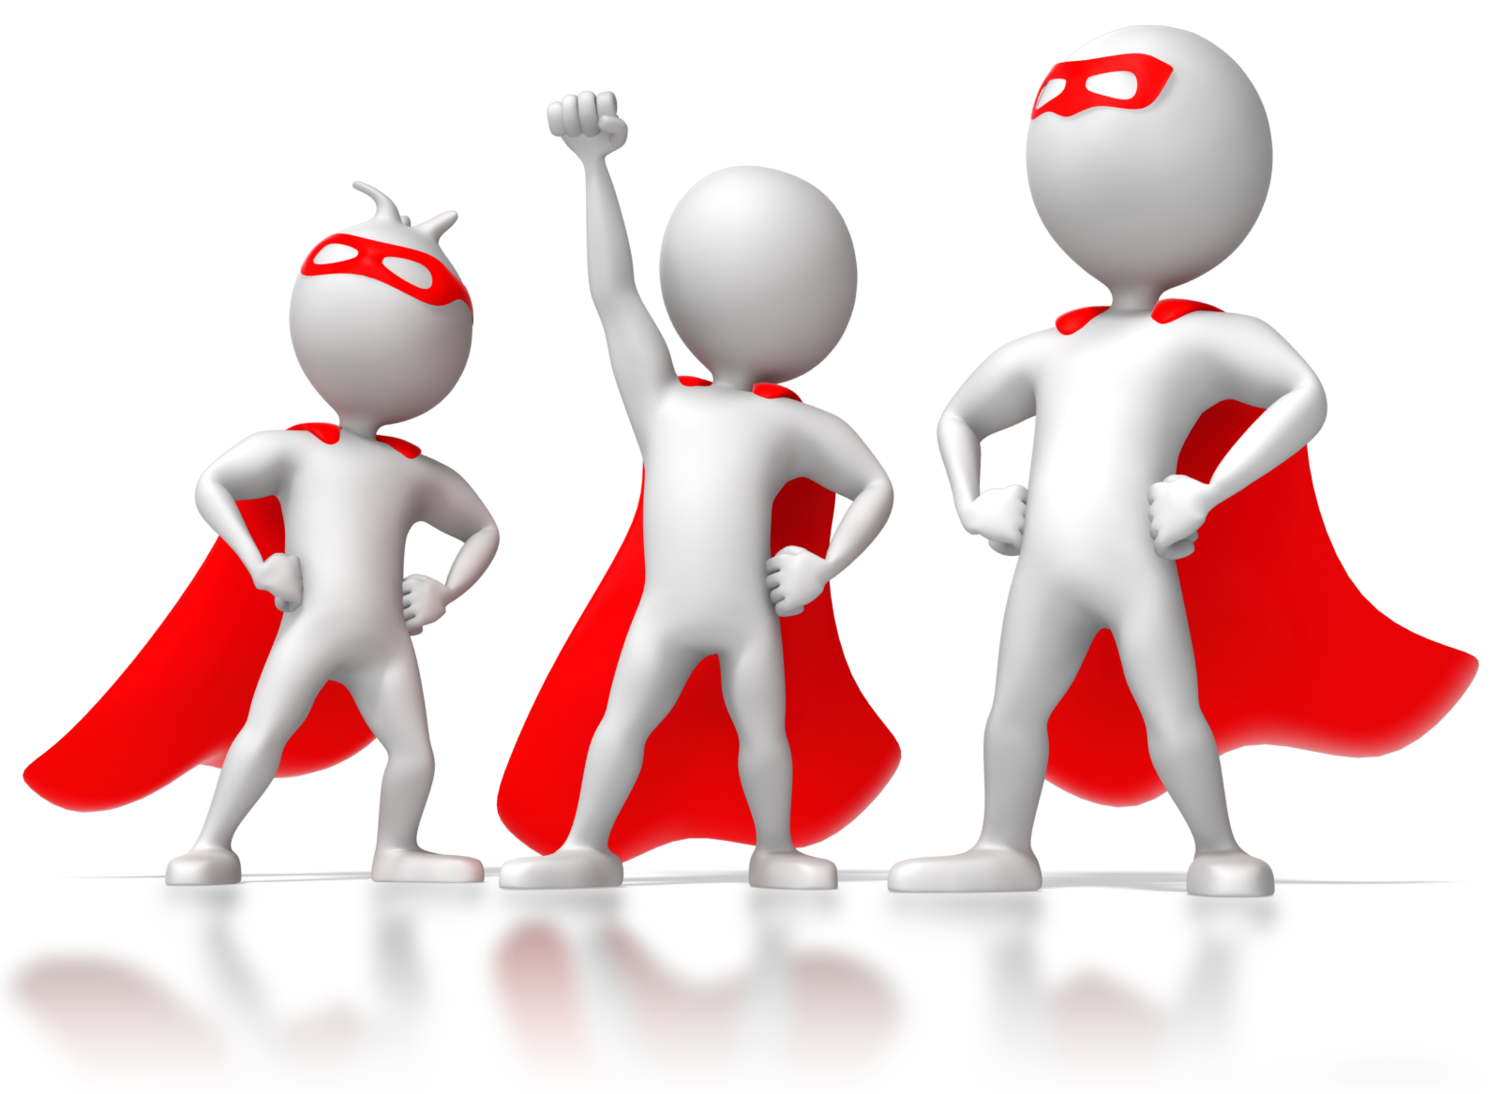 Leader clipart superhero. Leaderswithcaps cloudely is your